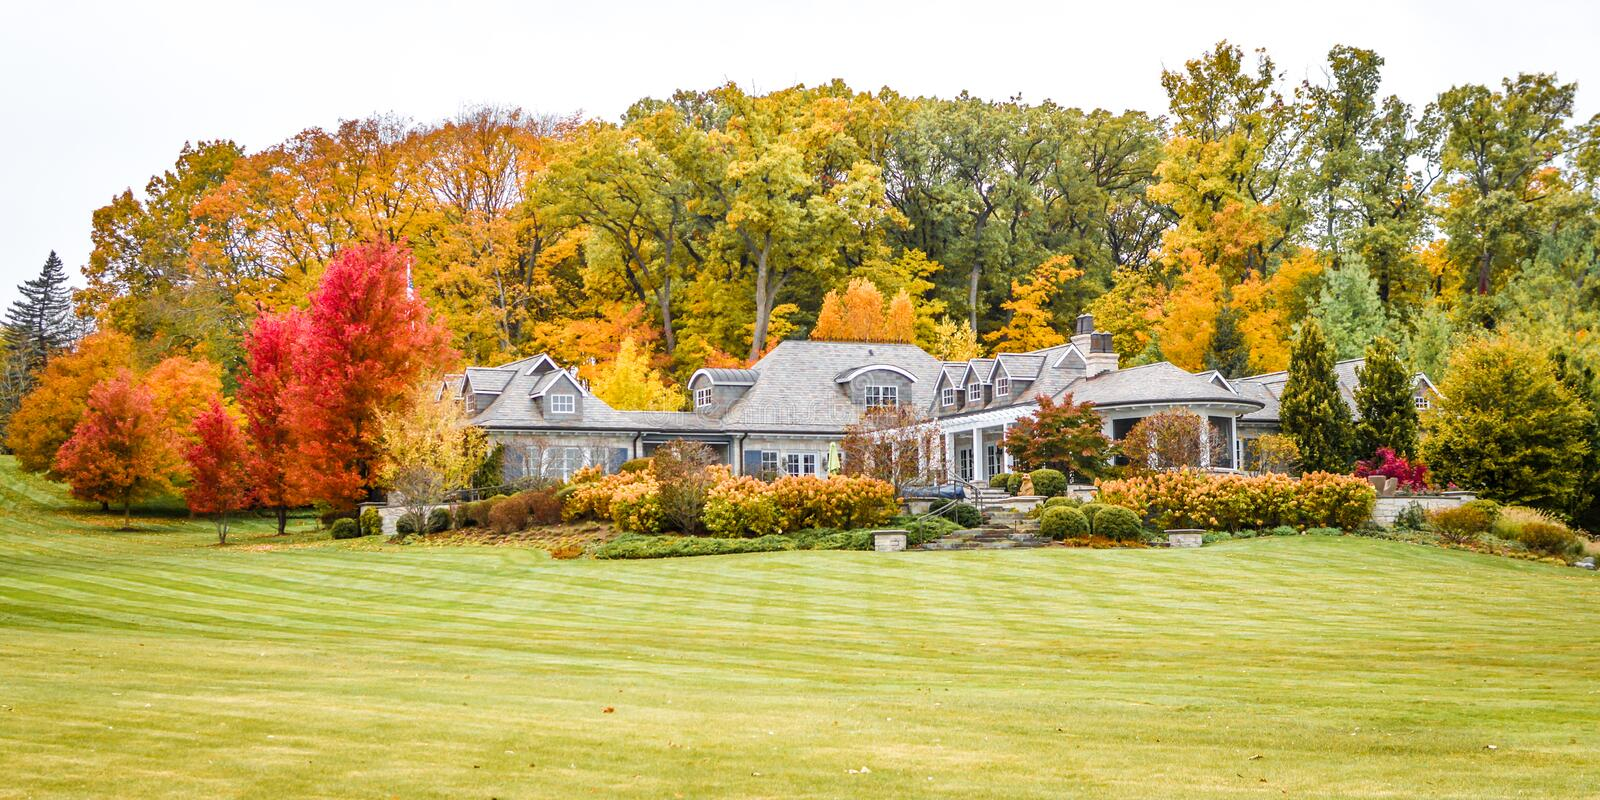 Large House in Fall, Lake Geneva, WI royalty free stock photography